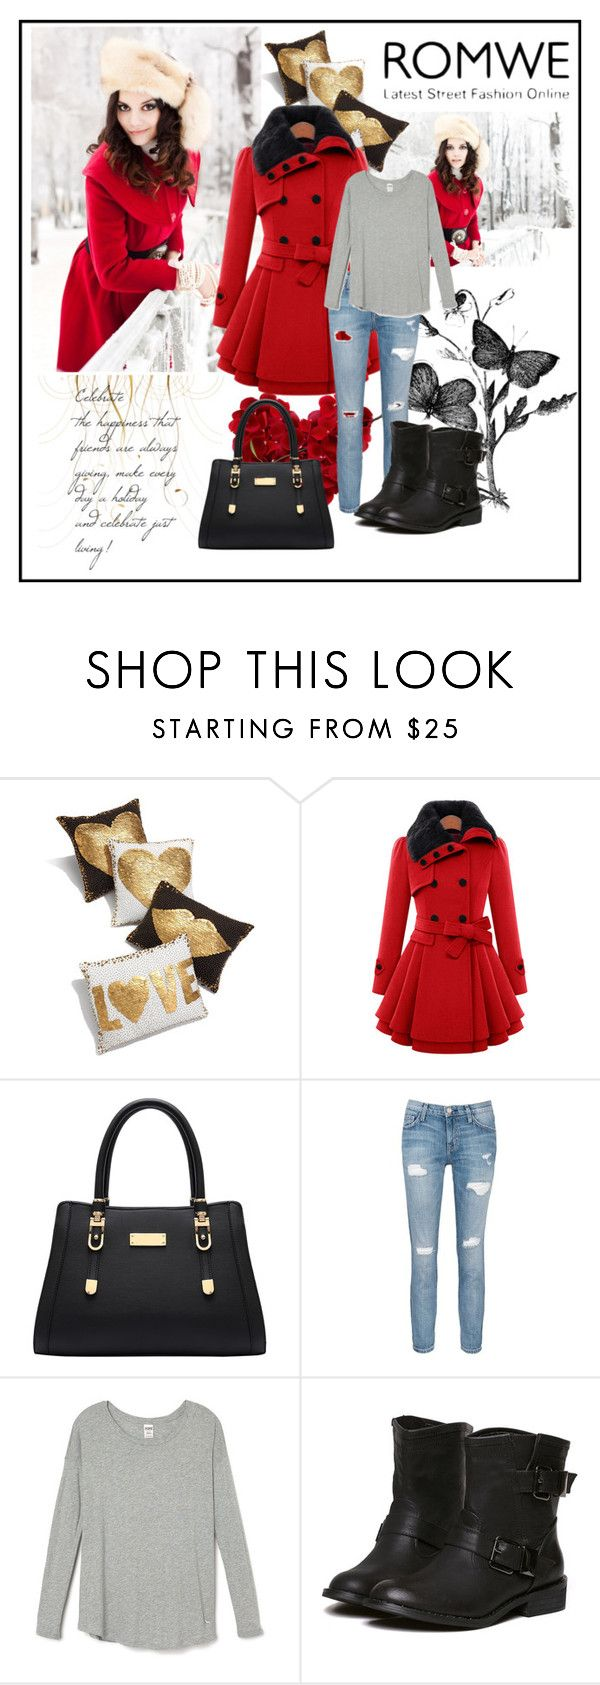 """""""Romwe 05"""" by aida-1999 ❤ liked on Polyvore featuring Jonathan Adler and Current/Elliott"""